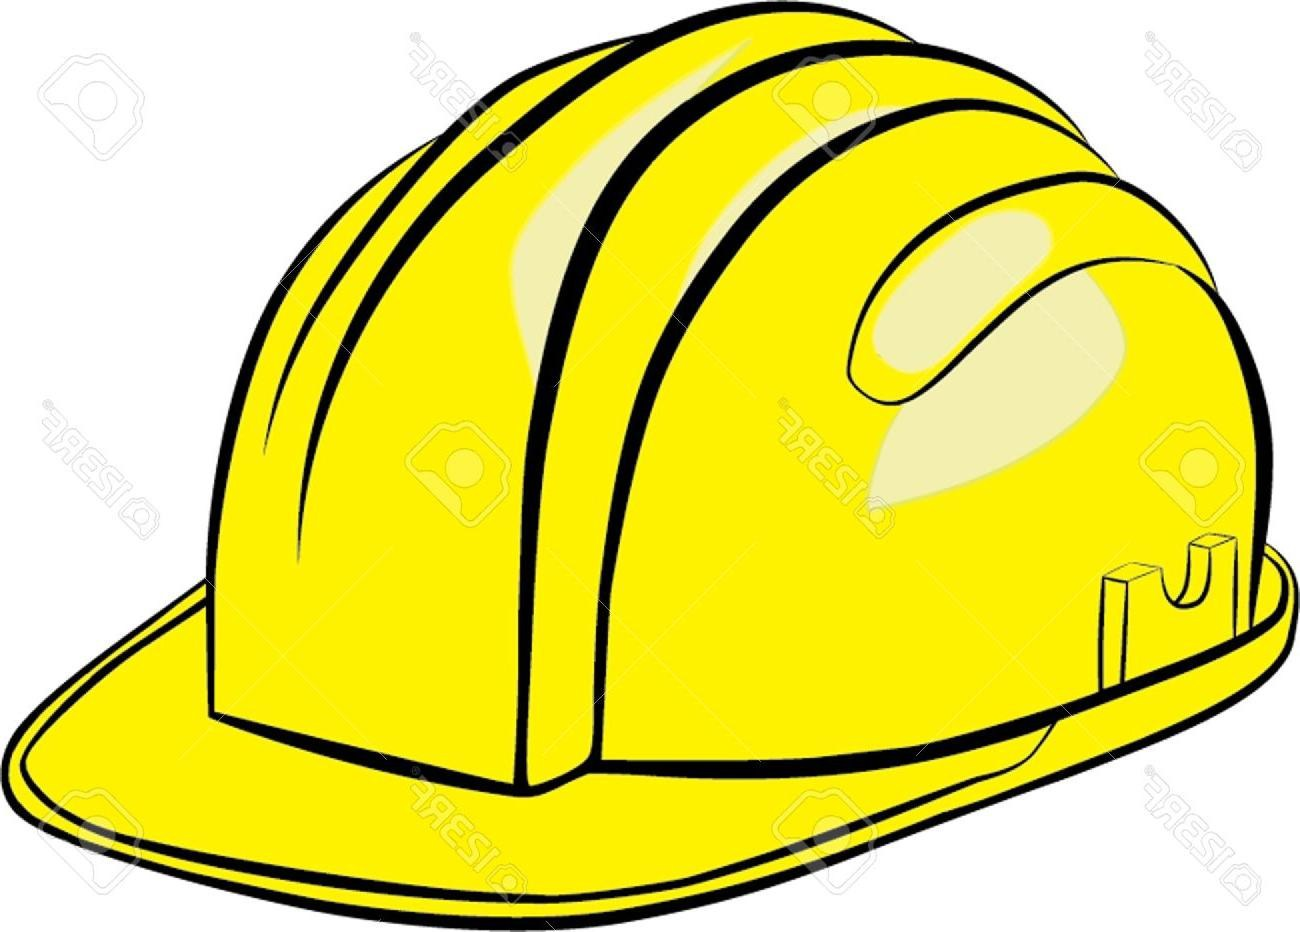 Hardhat clipart svg black and white download Hard hat clipart Lovely Top Construction Helmet Isolated ... svg black and white download